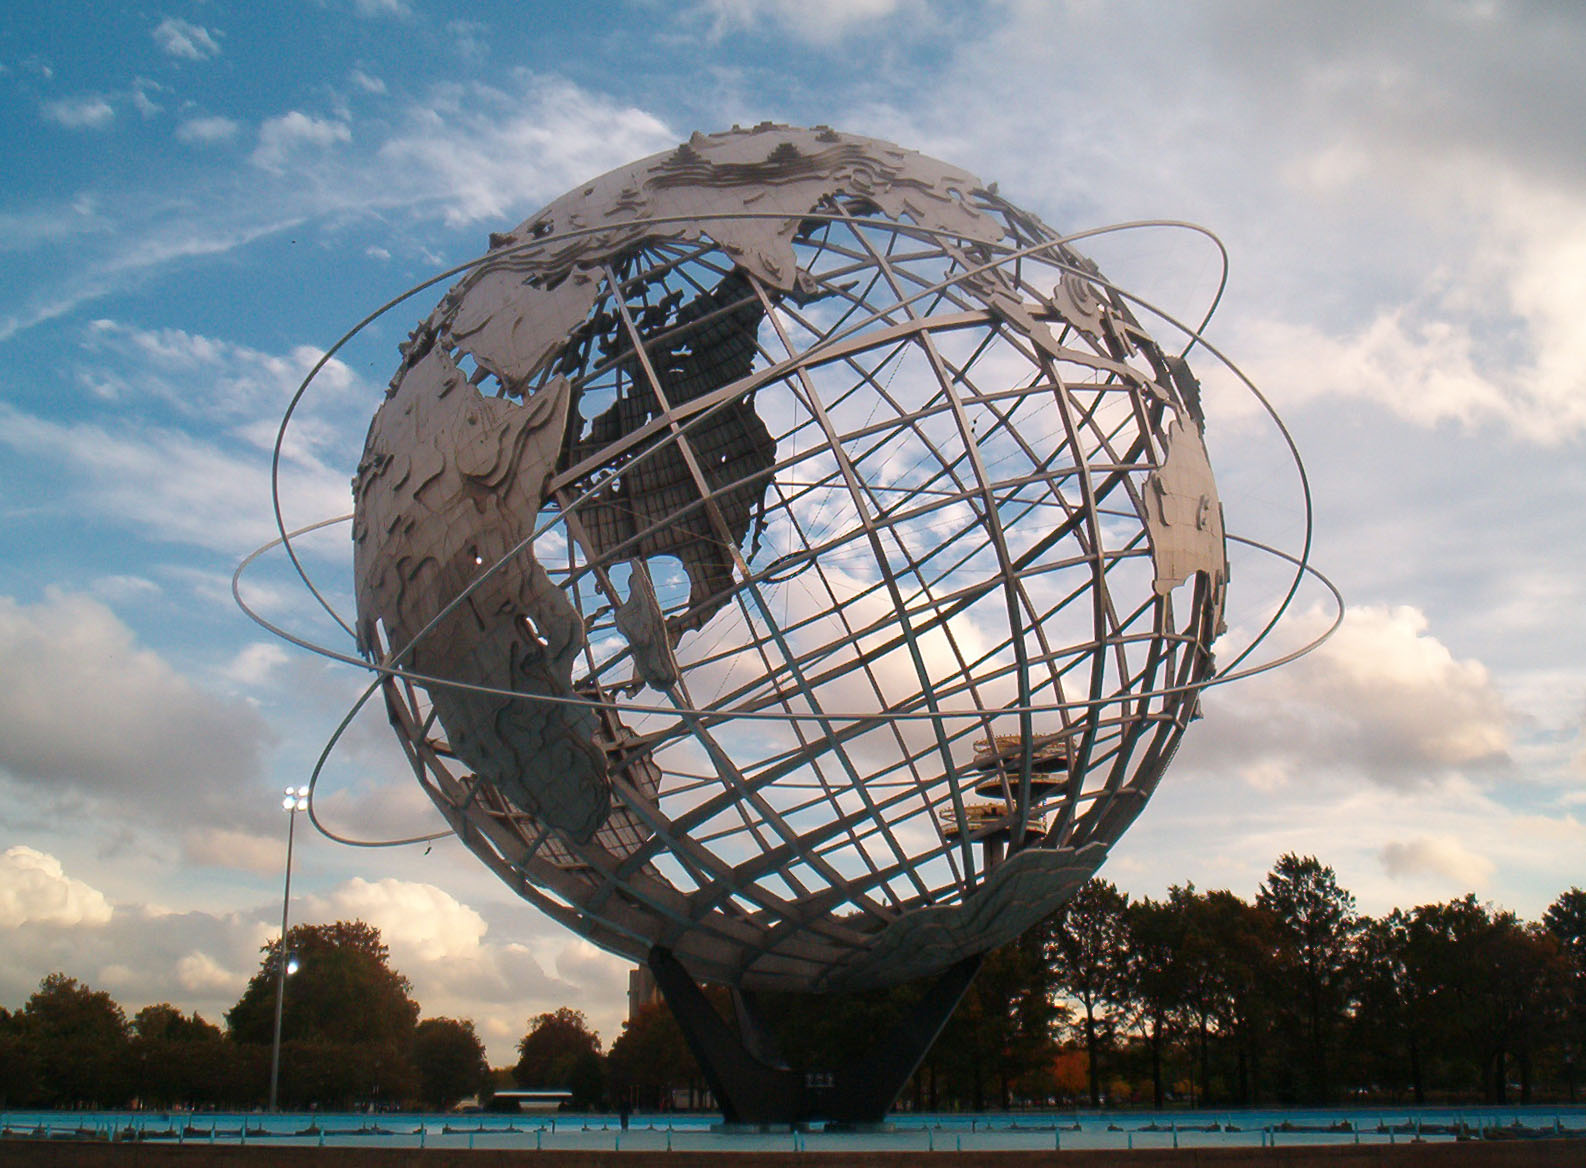 Flushing's latest expo models itself off the global feel of the 1964 World's Fair, famously represented through its classic Unisphere at Flushing Meadows Corona Park. Photo by Sam Howzit via Flickr.